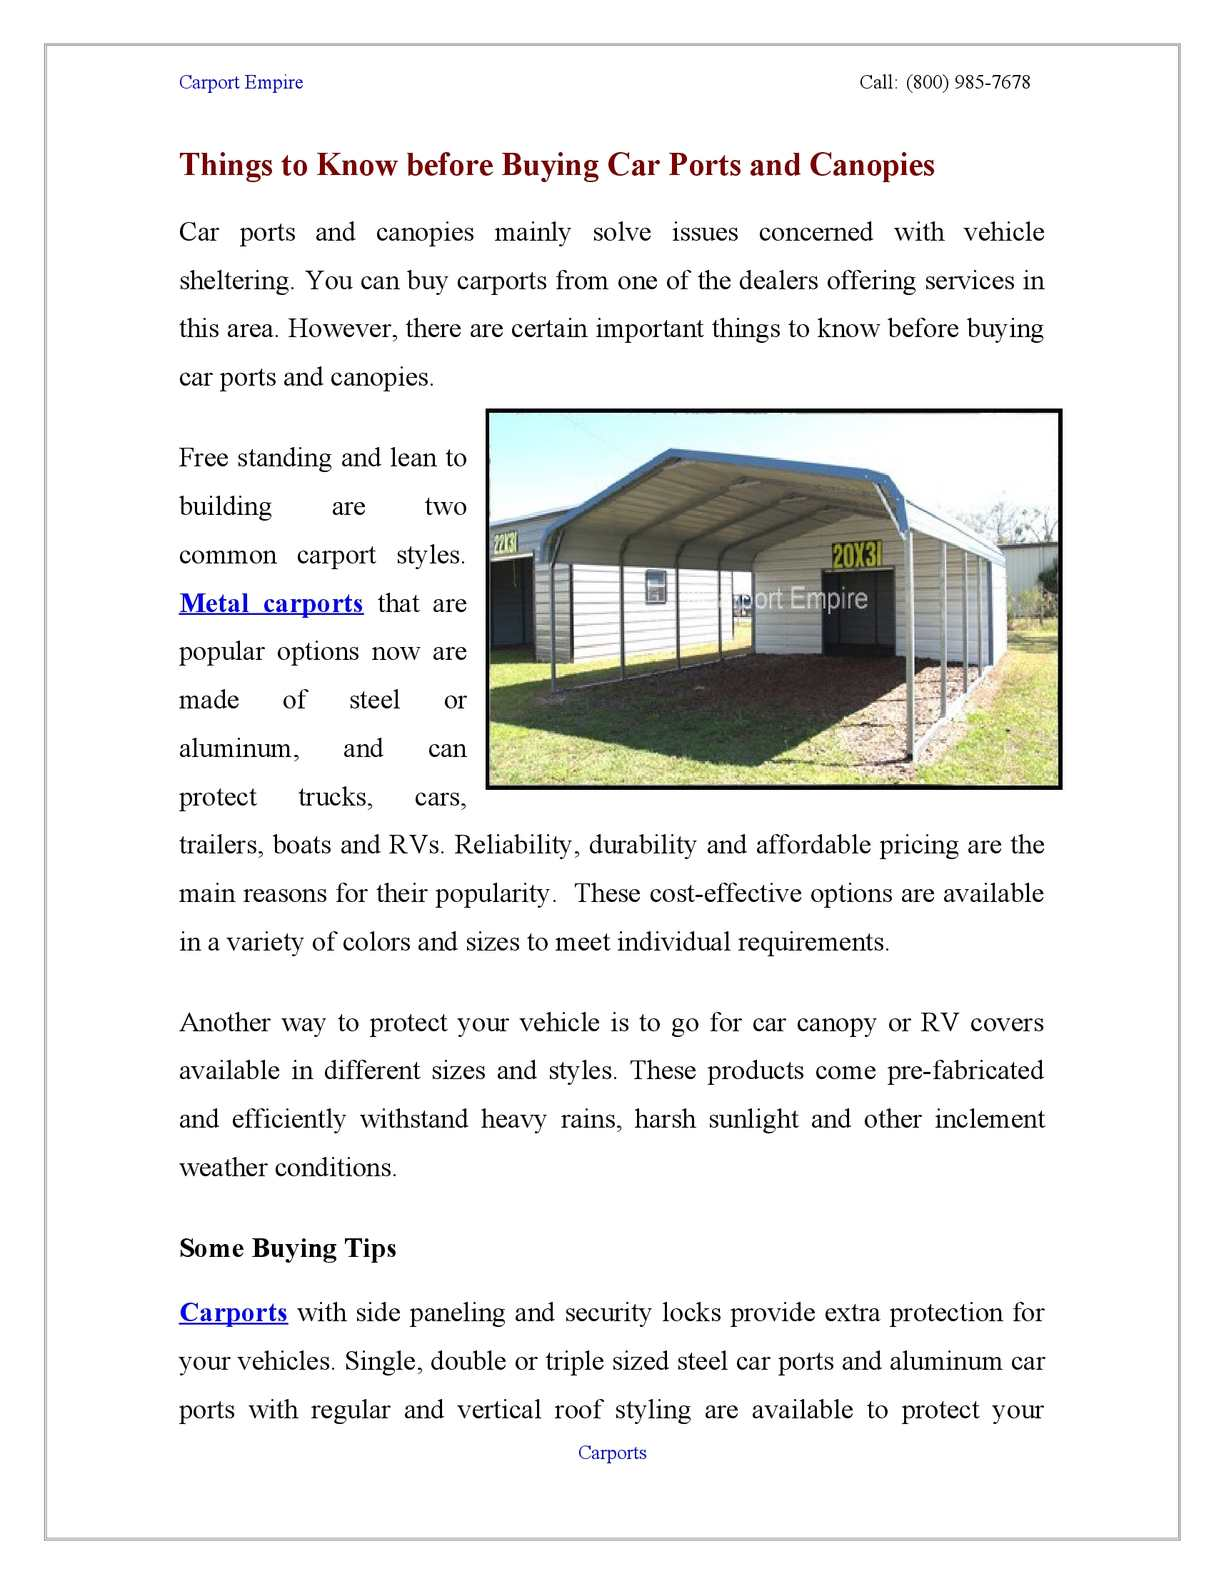 Calameo Things To Know Before Buying Car Ports And Canopies